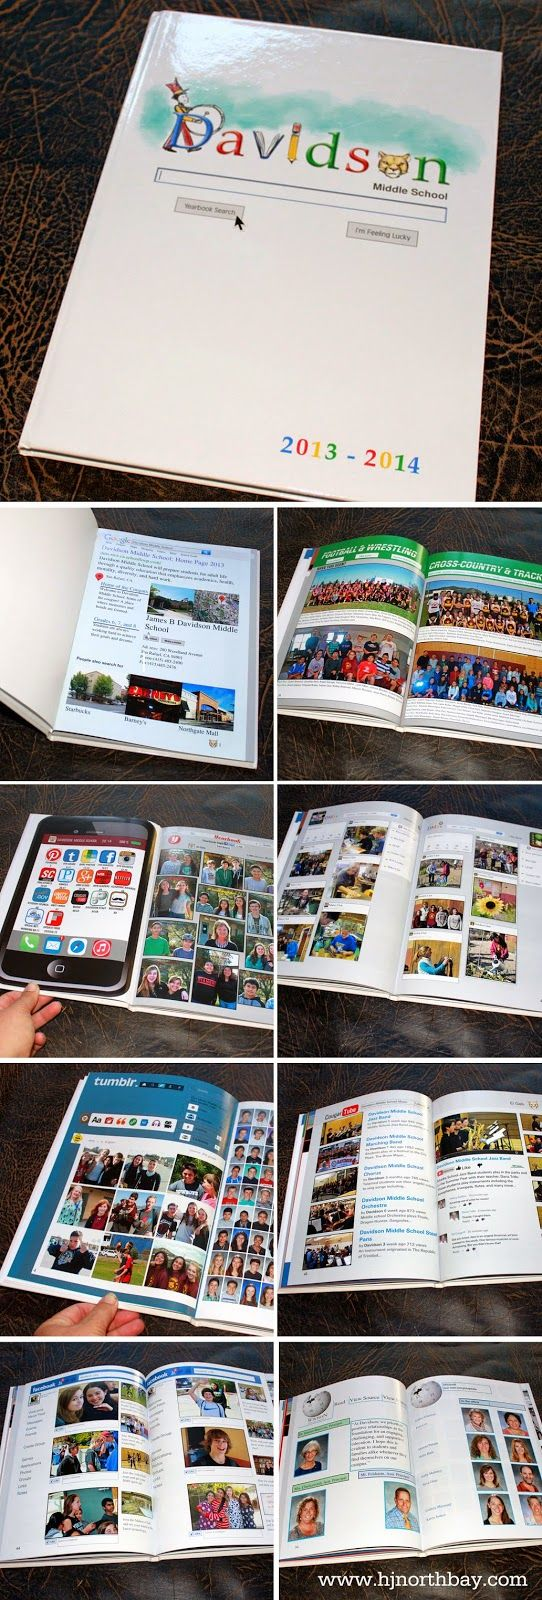 Internet social media yearbook theme with a fun google doodle on the cover